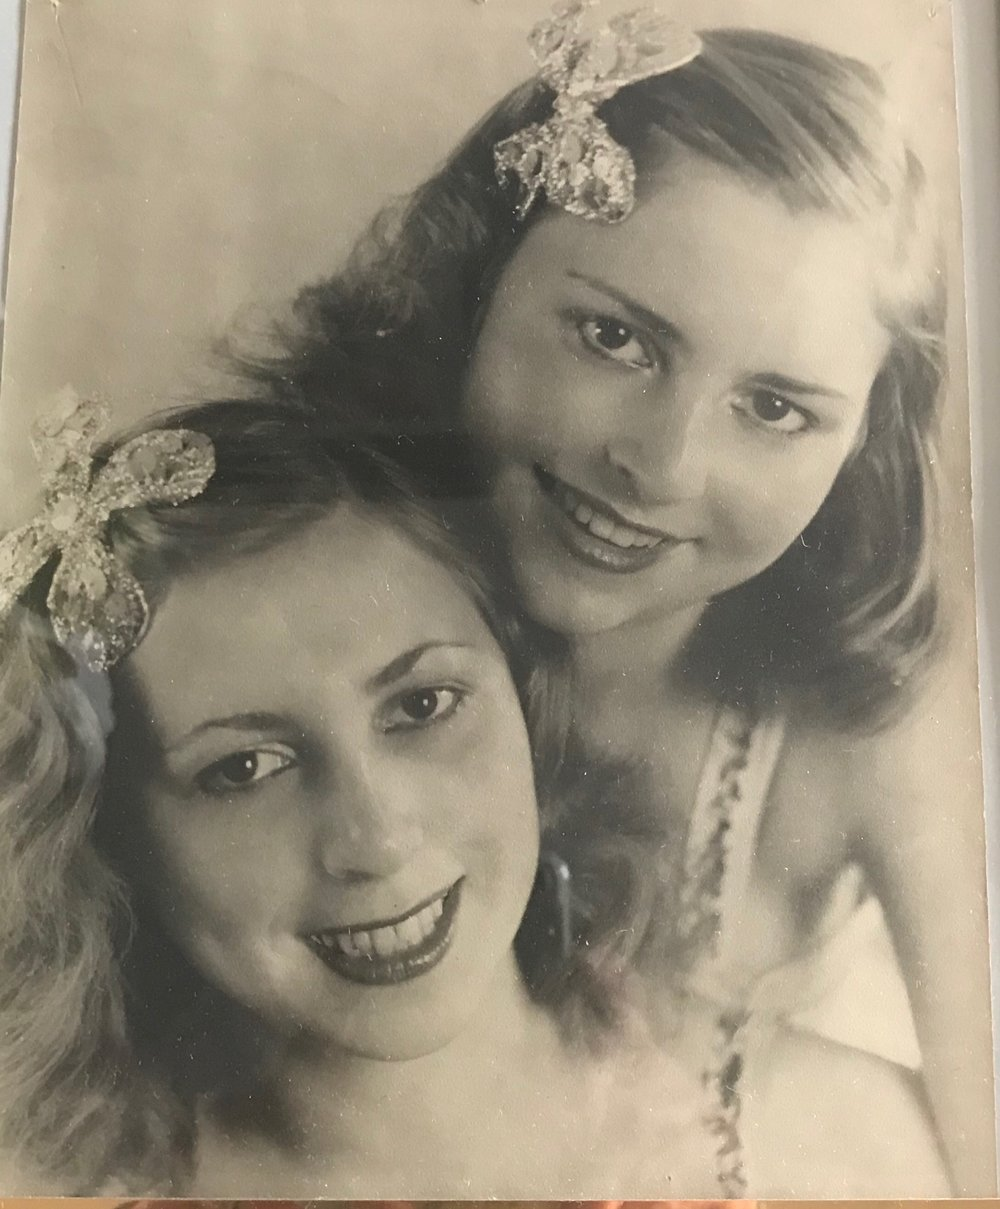 Sonja & Bianca, Hamburg, Germany, circa 1945. My 19 year old grandmother, who danced with a touring Italian dance company, and my 13 year old great aunt, at the end of the war, and at the very beginning of a professional partnership that spanned 2 decades, and 2 continents. Along with my great grandmother, who sewed their costumes, they miraclulously survived the bombing of Dresden, which destroyed literally everything they had. Just a short time after this photo was taken, Sonja was diagnosed with a brain tumor that was predicted to take her life, but took only her sight. She continued to dance until she was 74.